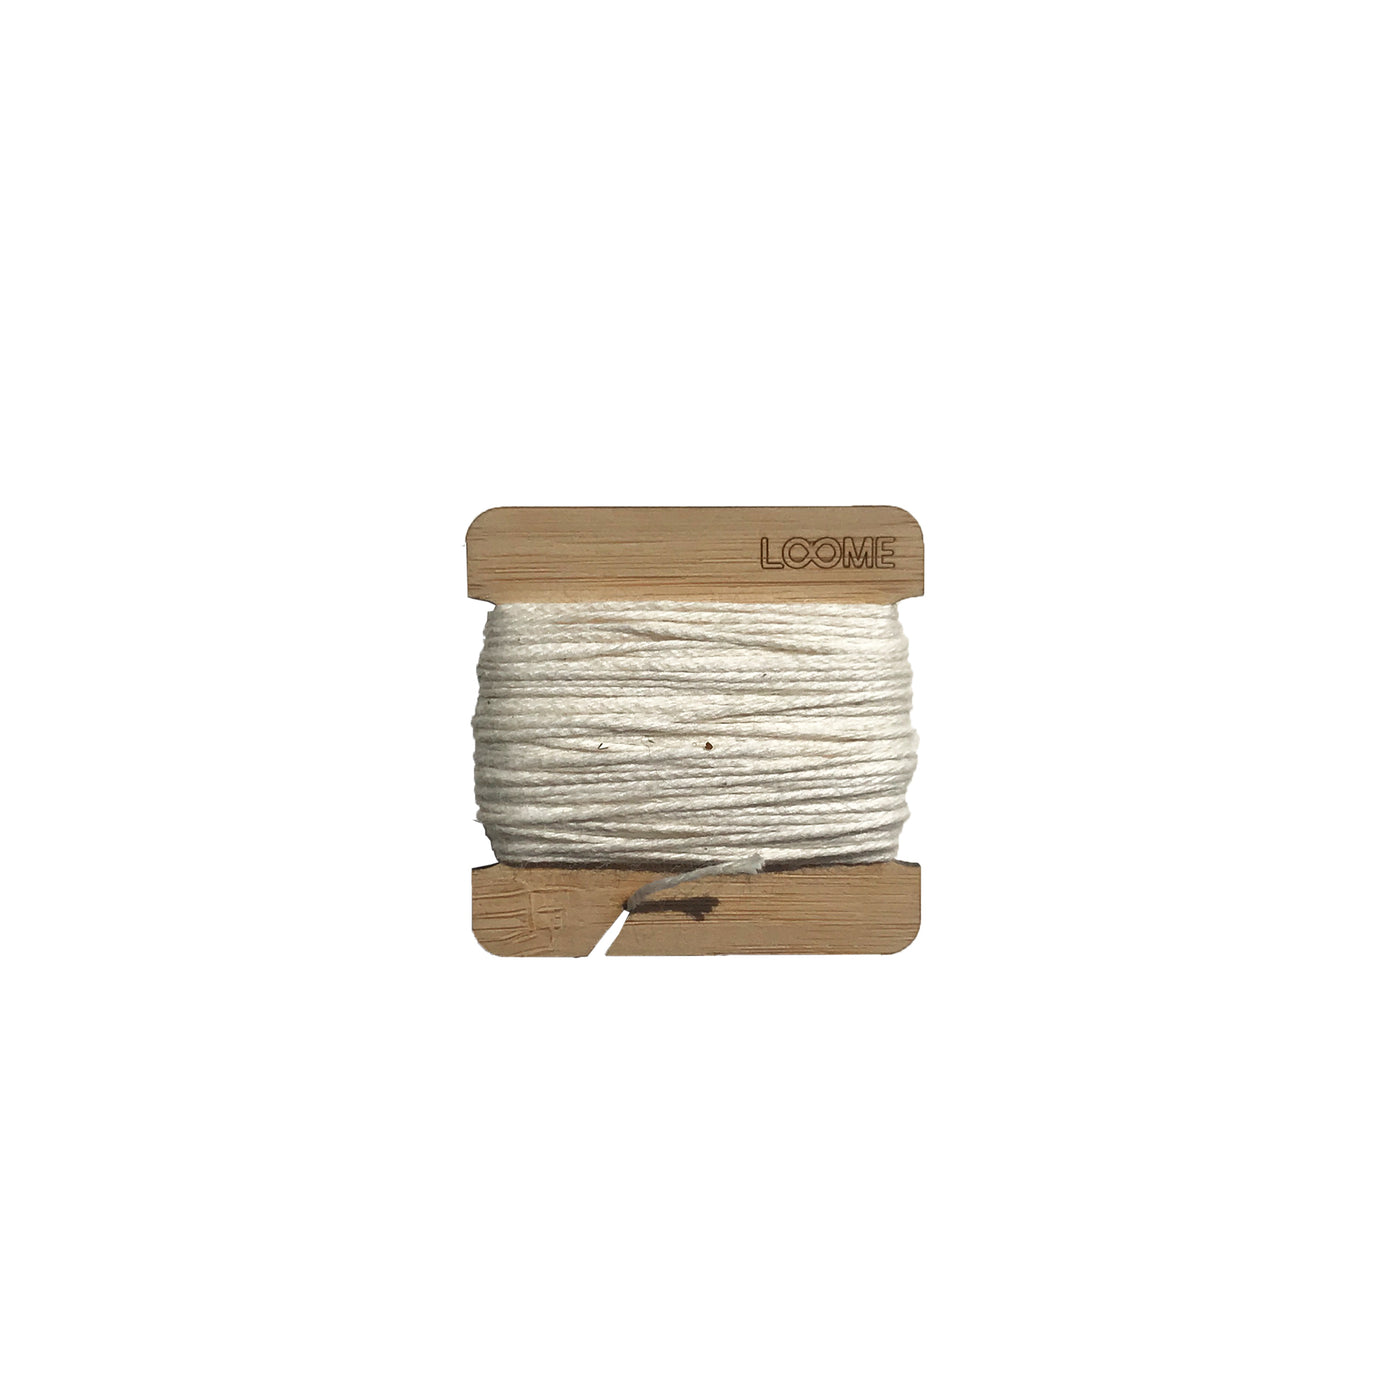 ACCESSORY: Bobbin with Cotton Warp (for Weaving Looms)